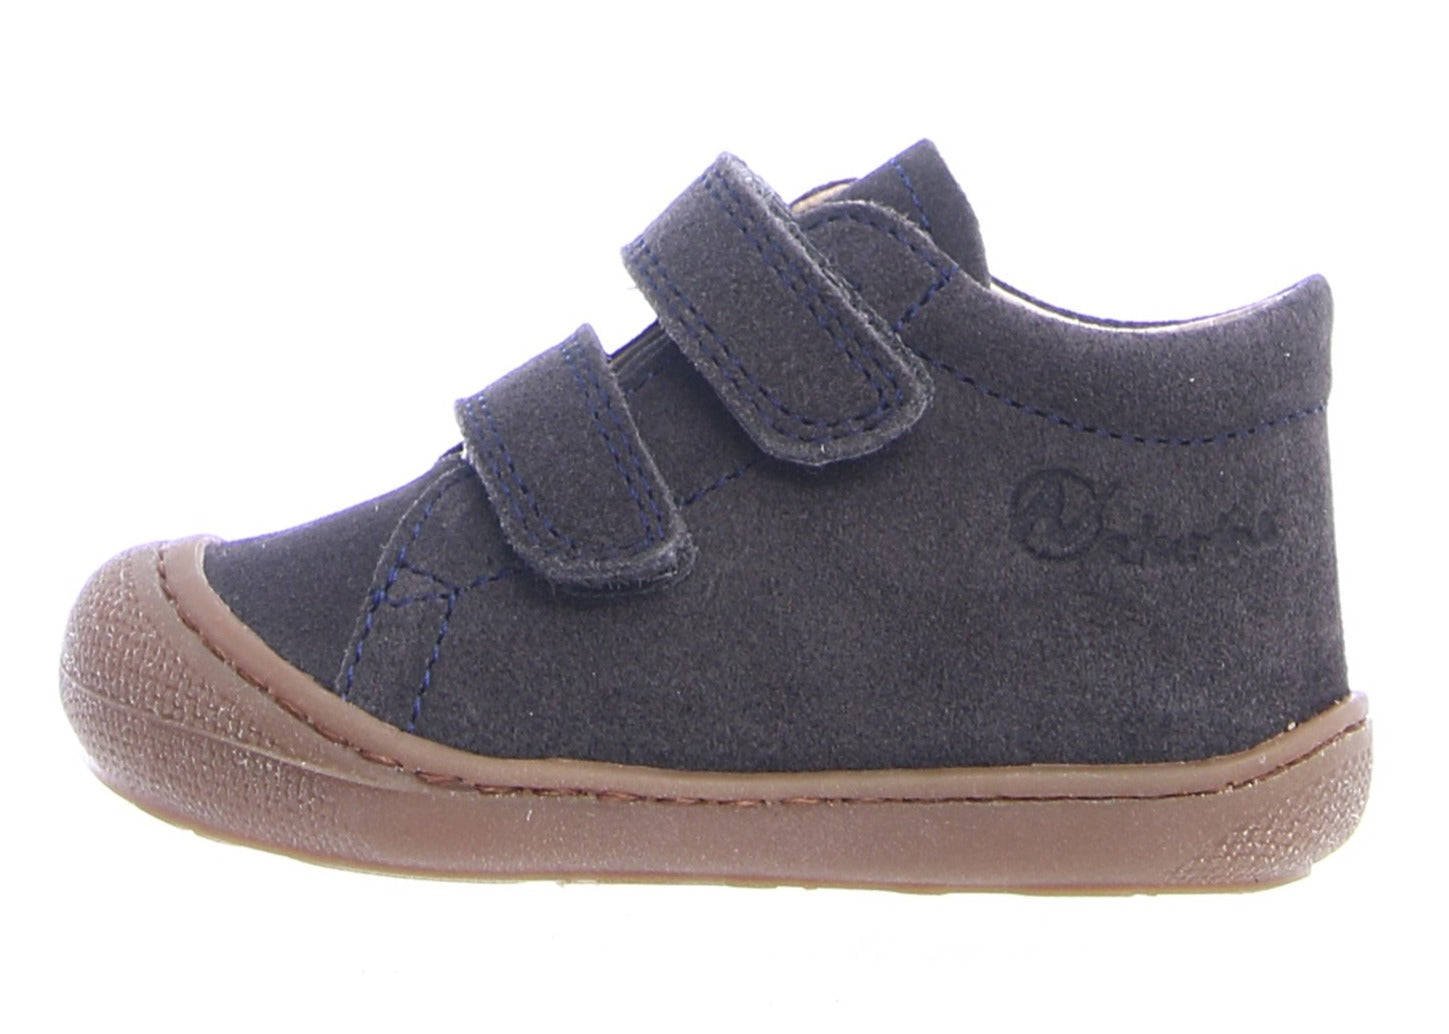 Cocoon VL - Anthracite Azzurro Suede